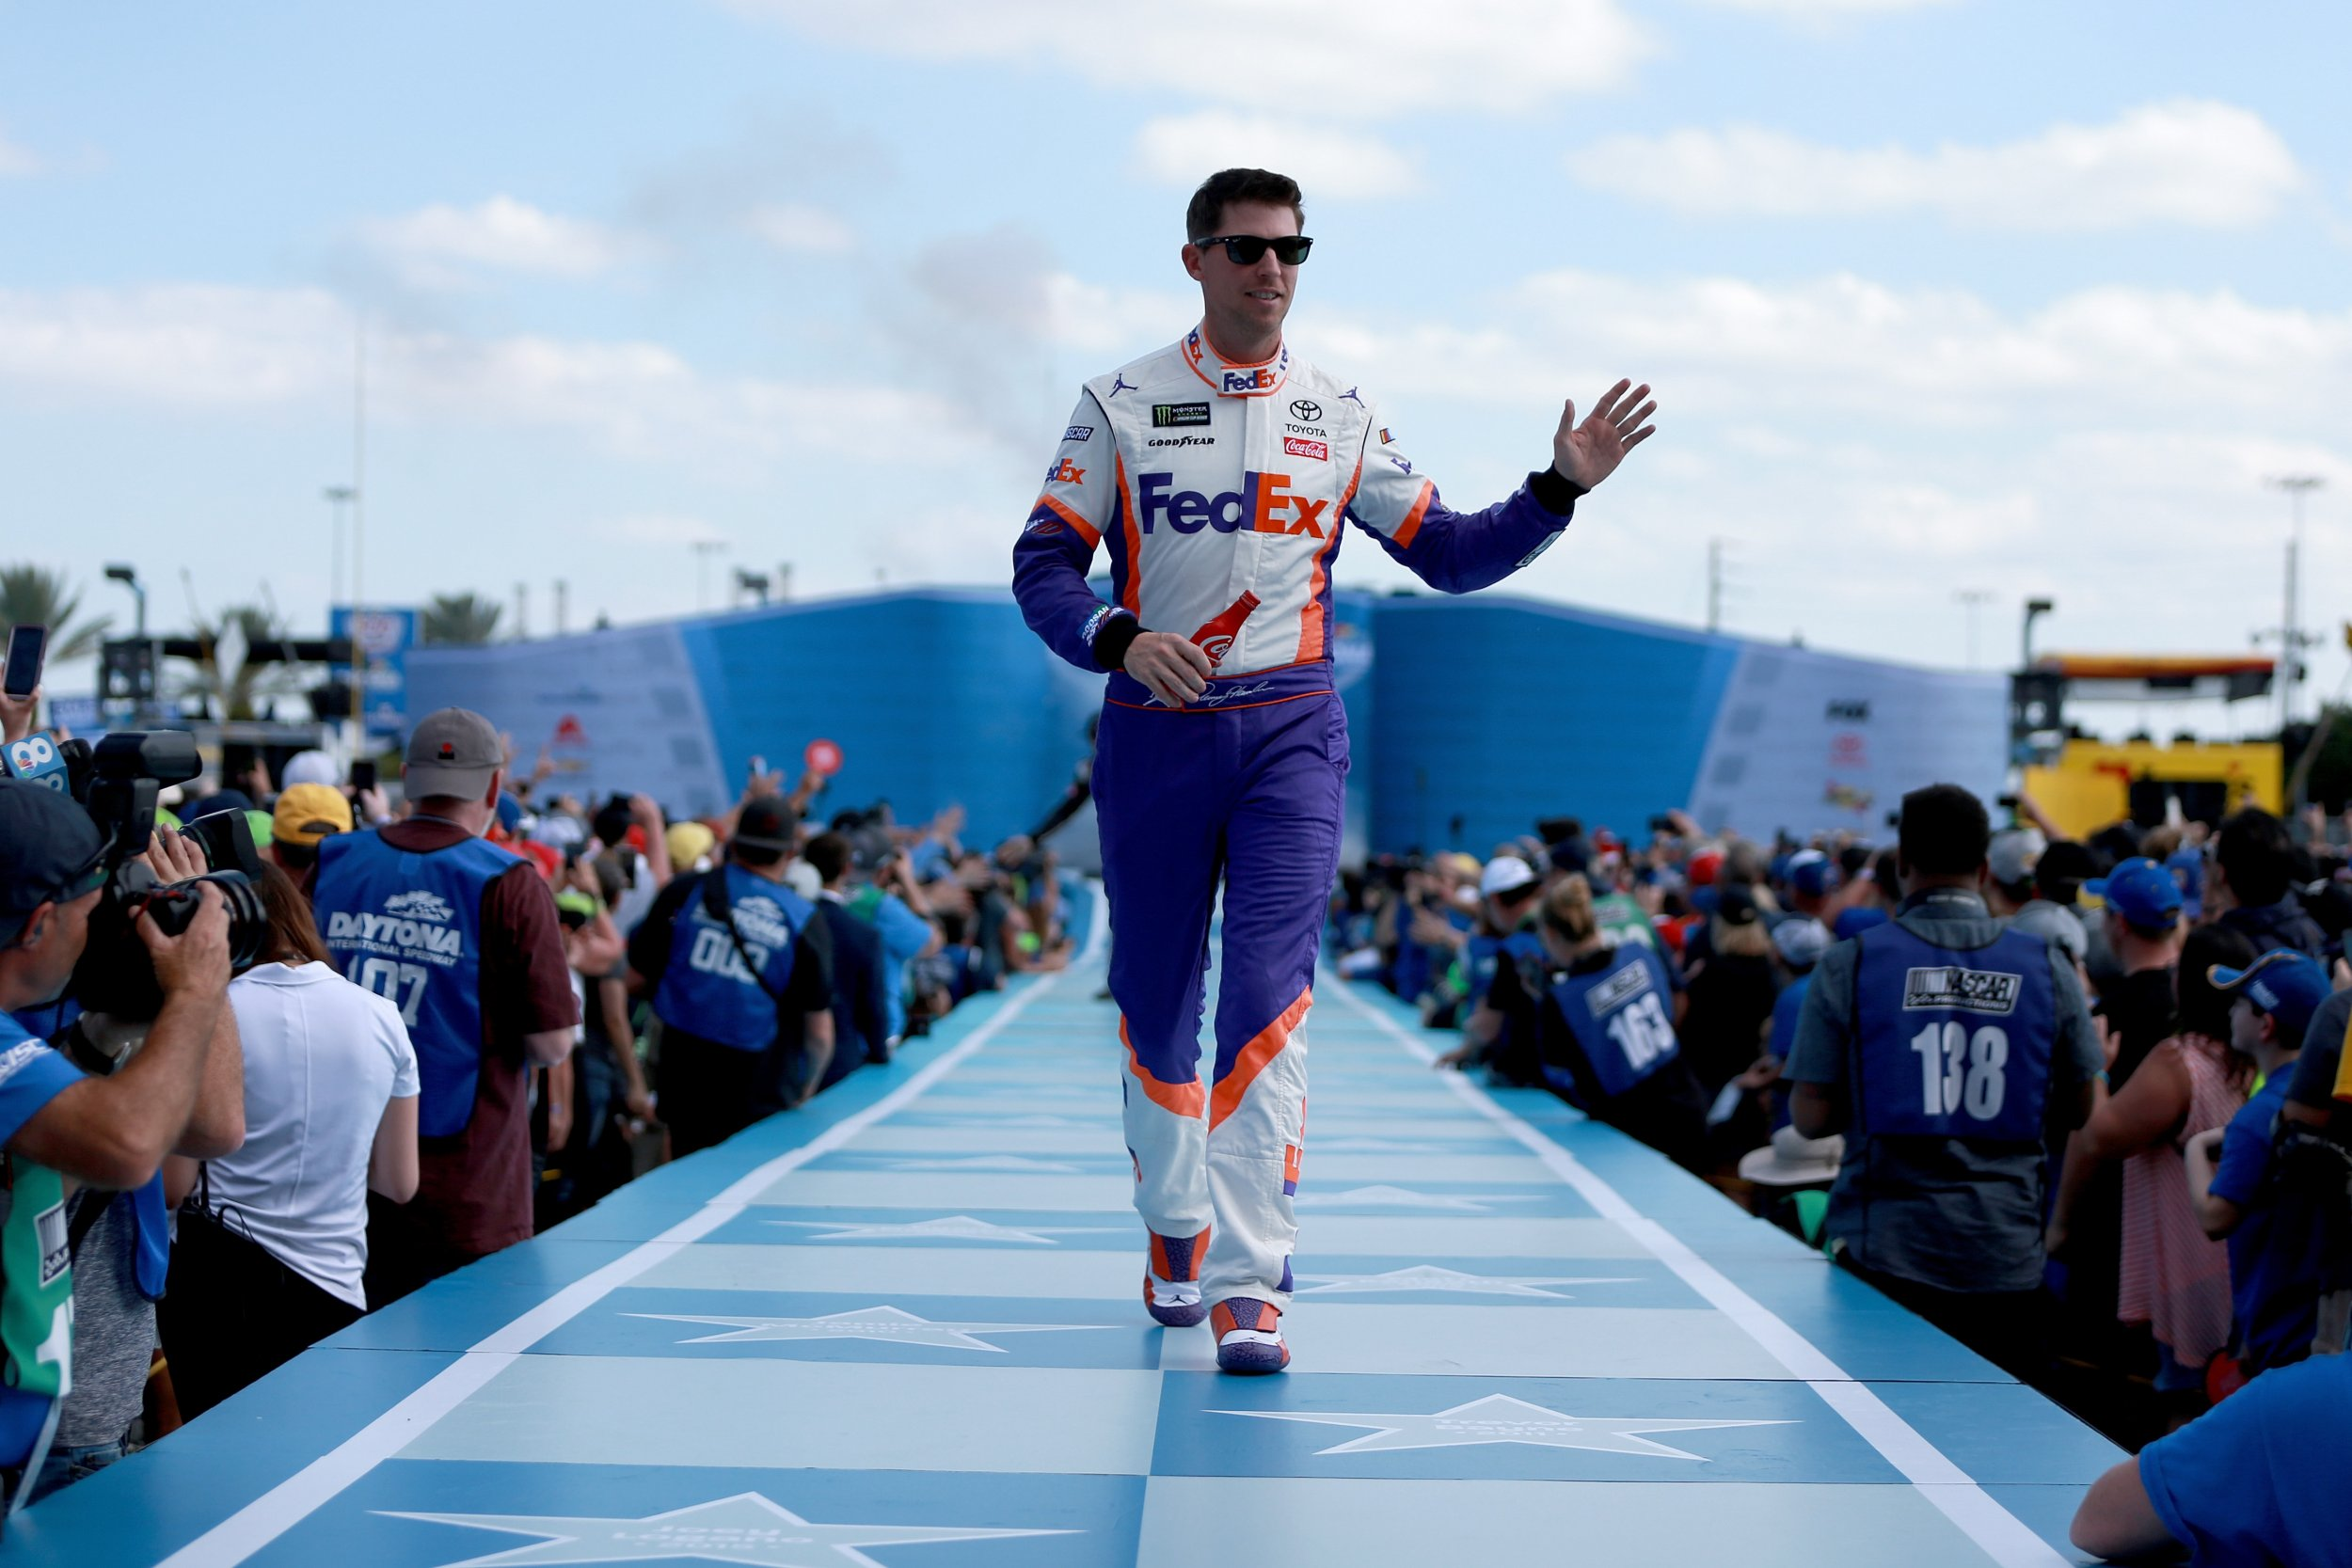 Daytona 500: Who Is In the Lead of the Annual NASCAR Race?